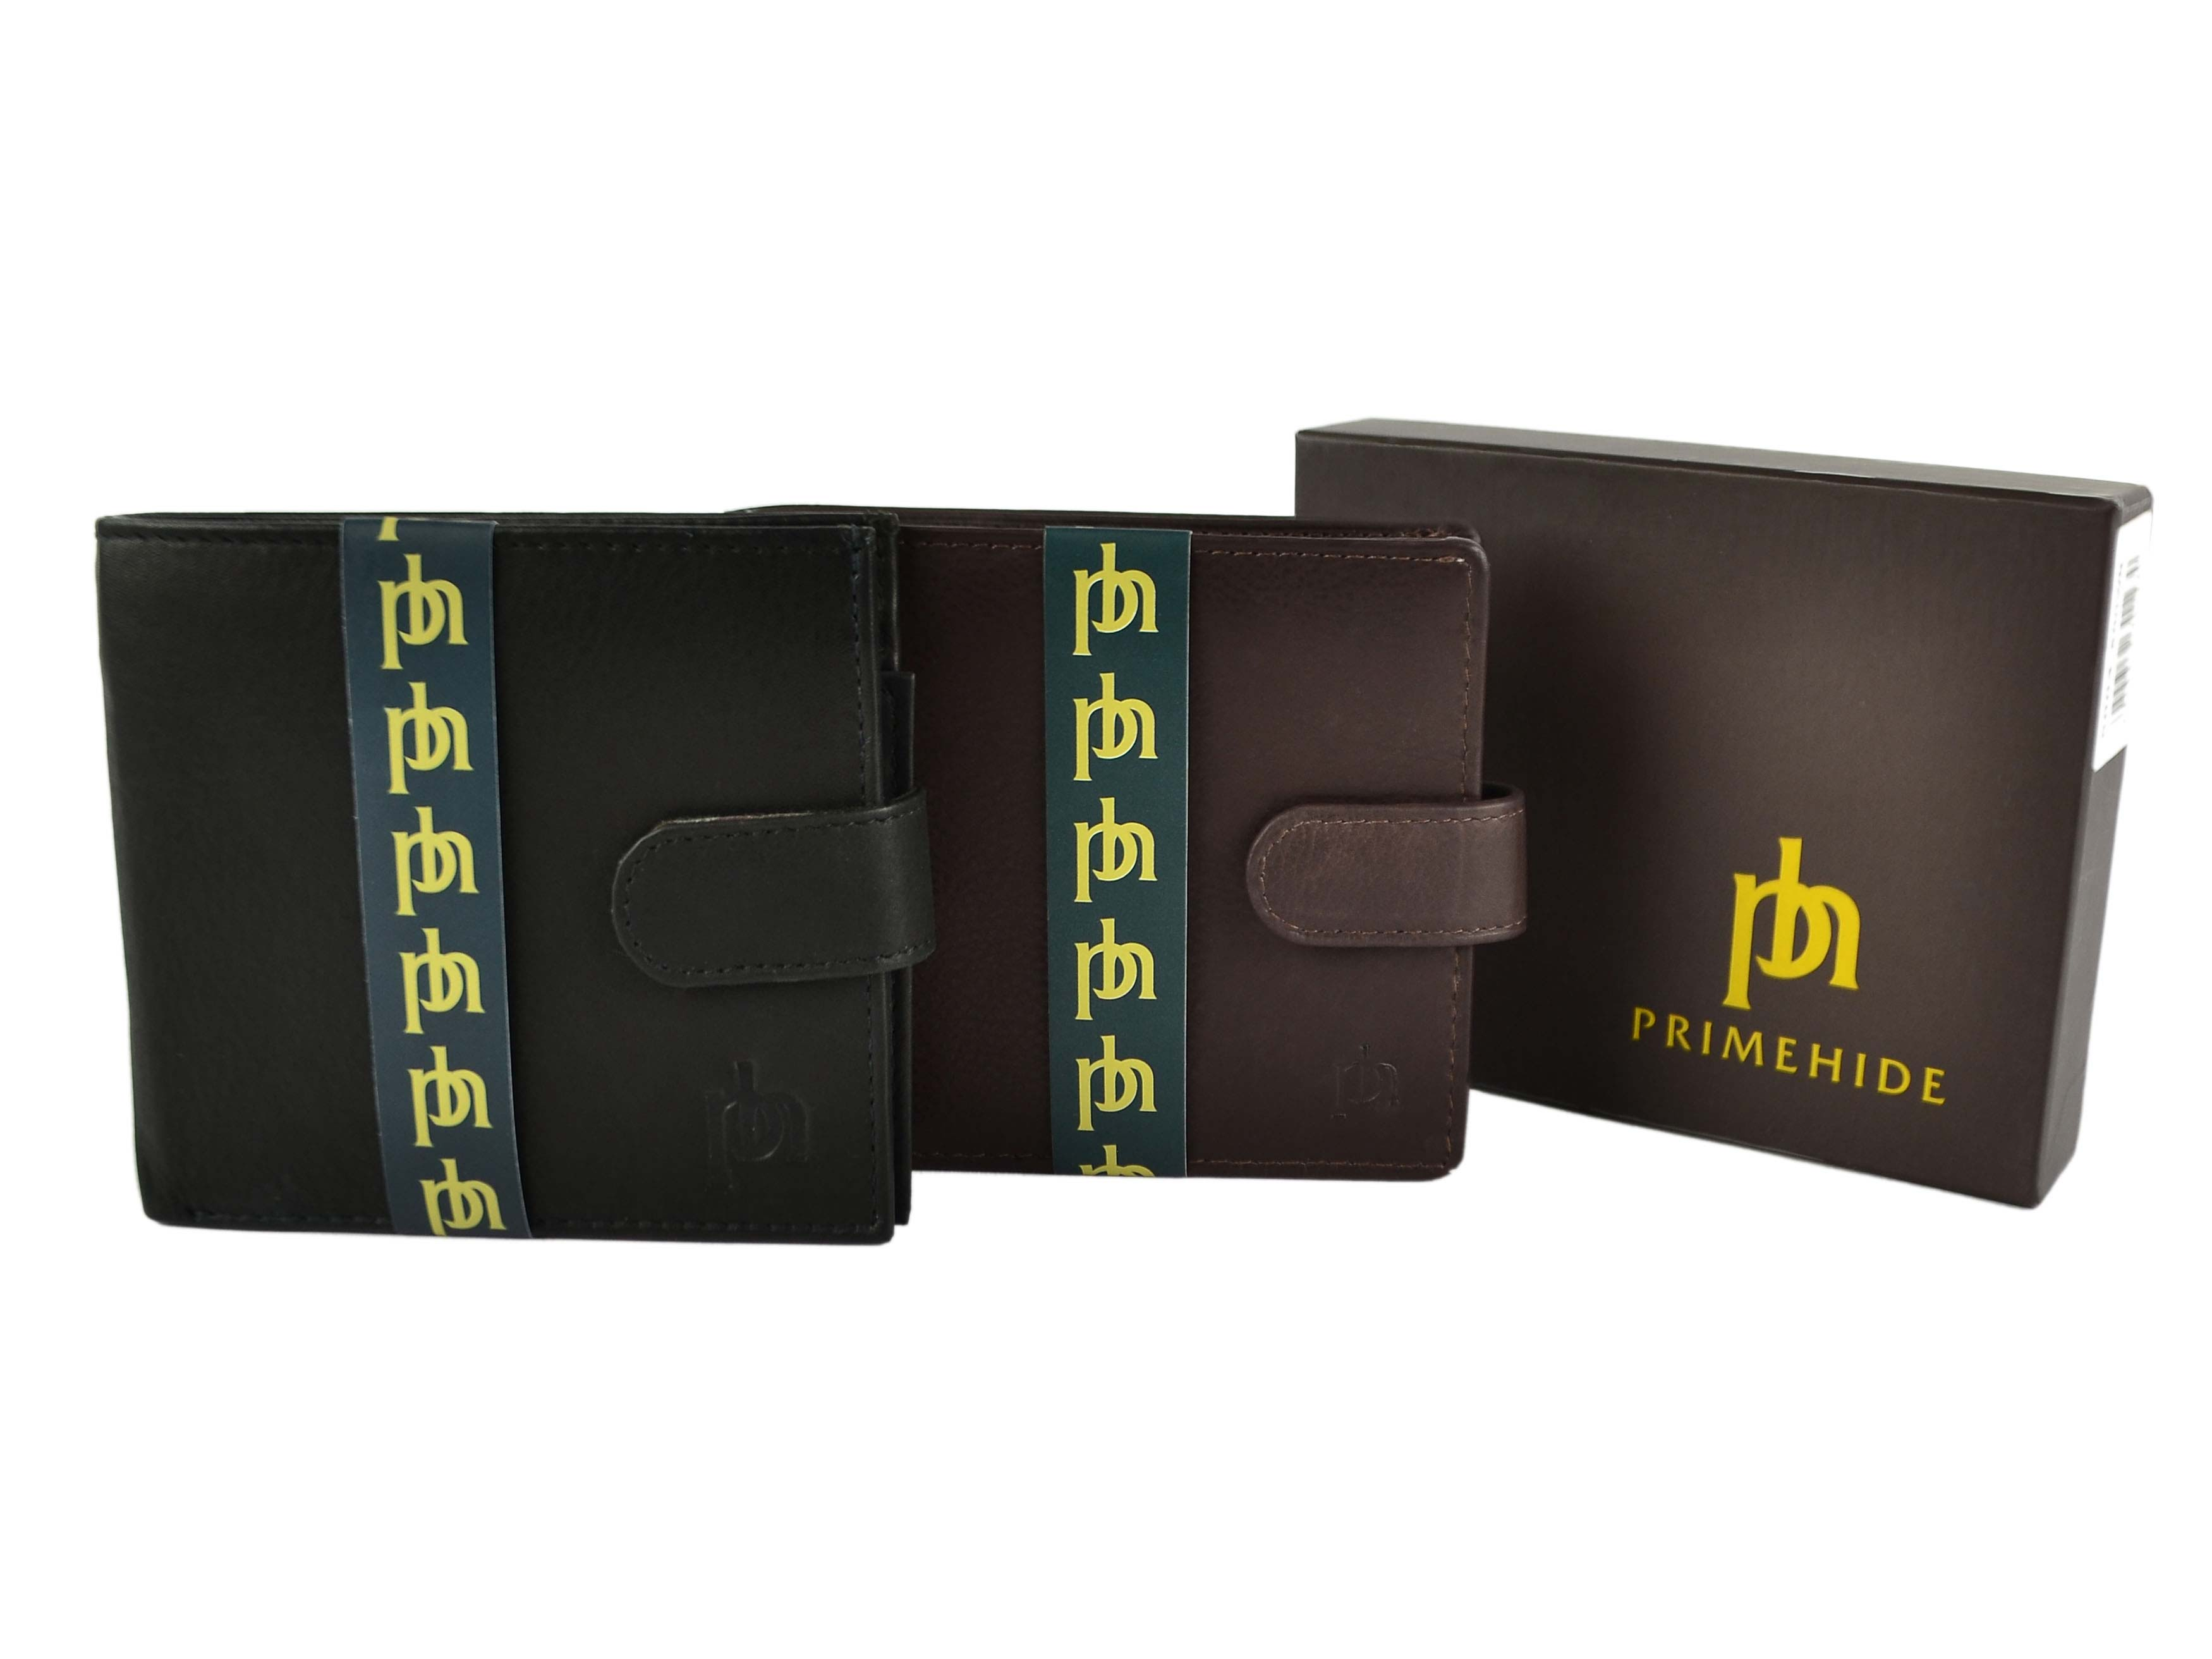 Mens-Quality-Soft-Leather-Wallet-by-Prime-Hide-Gift-Boxed-Stylish-with-Tab thumbnail 7